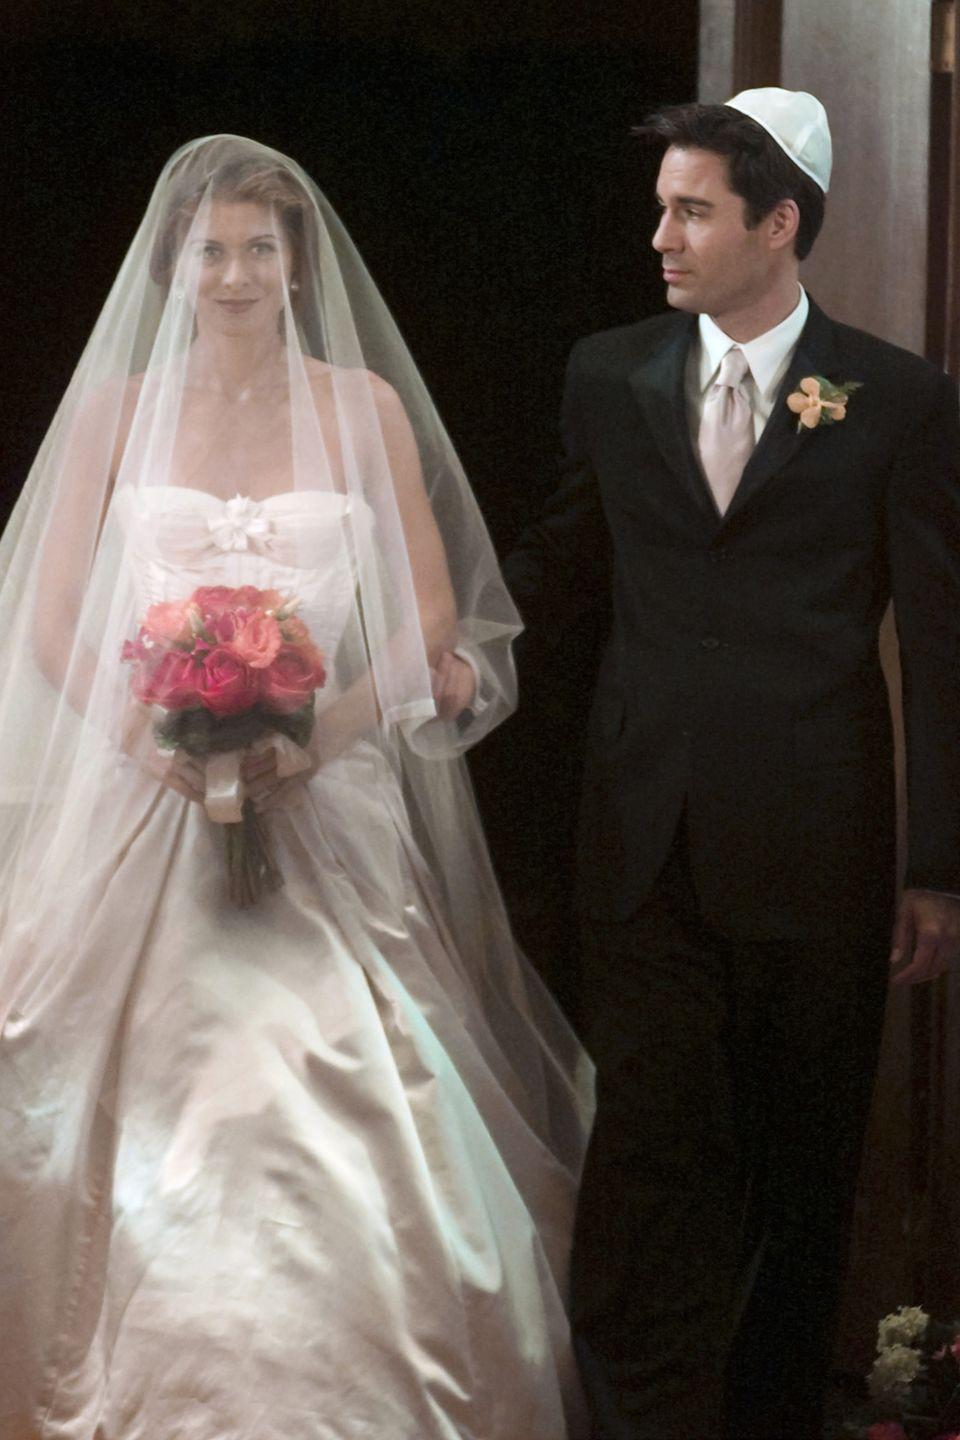 <p>Grace walked down the aisle in season 5 to marry her boyfriend of two months, Leo, wearing a strapless gown with an elegant veil. And, in a very fitting gesture, her BFF Will walked her down the aisle. </p>